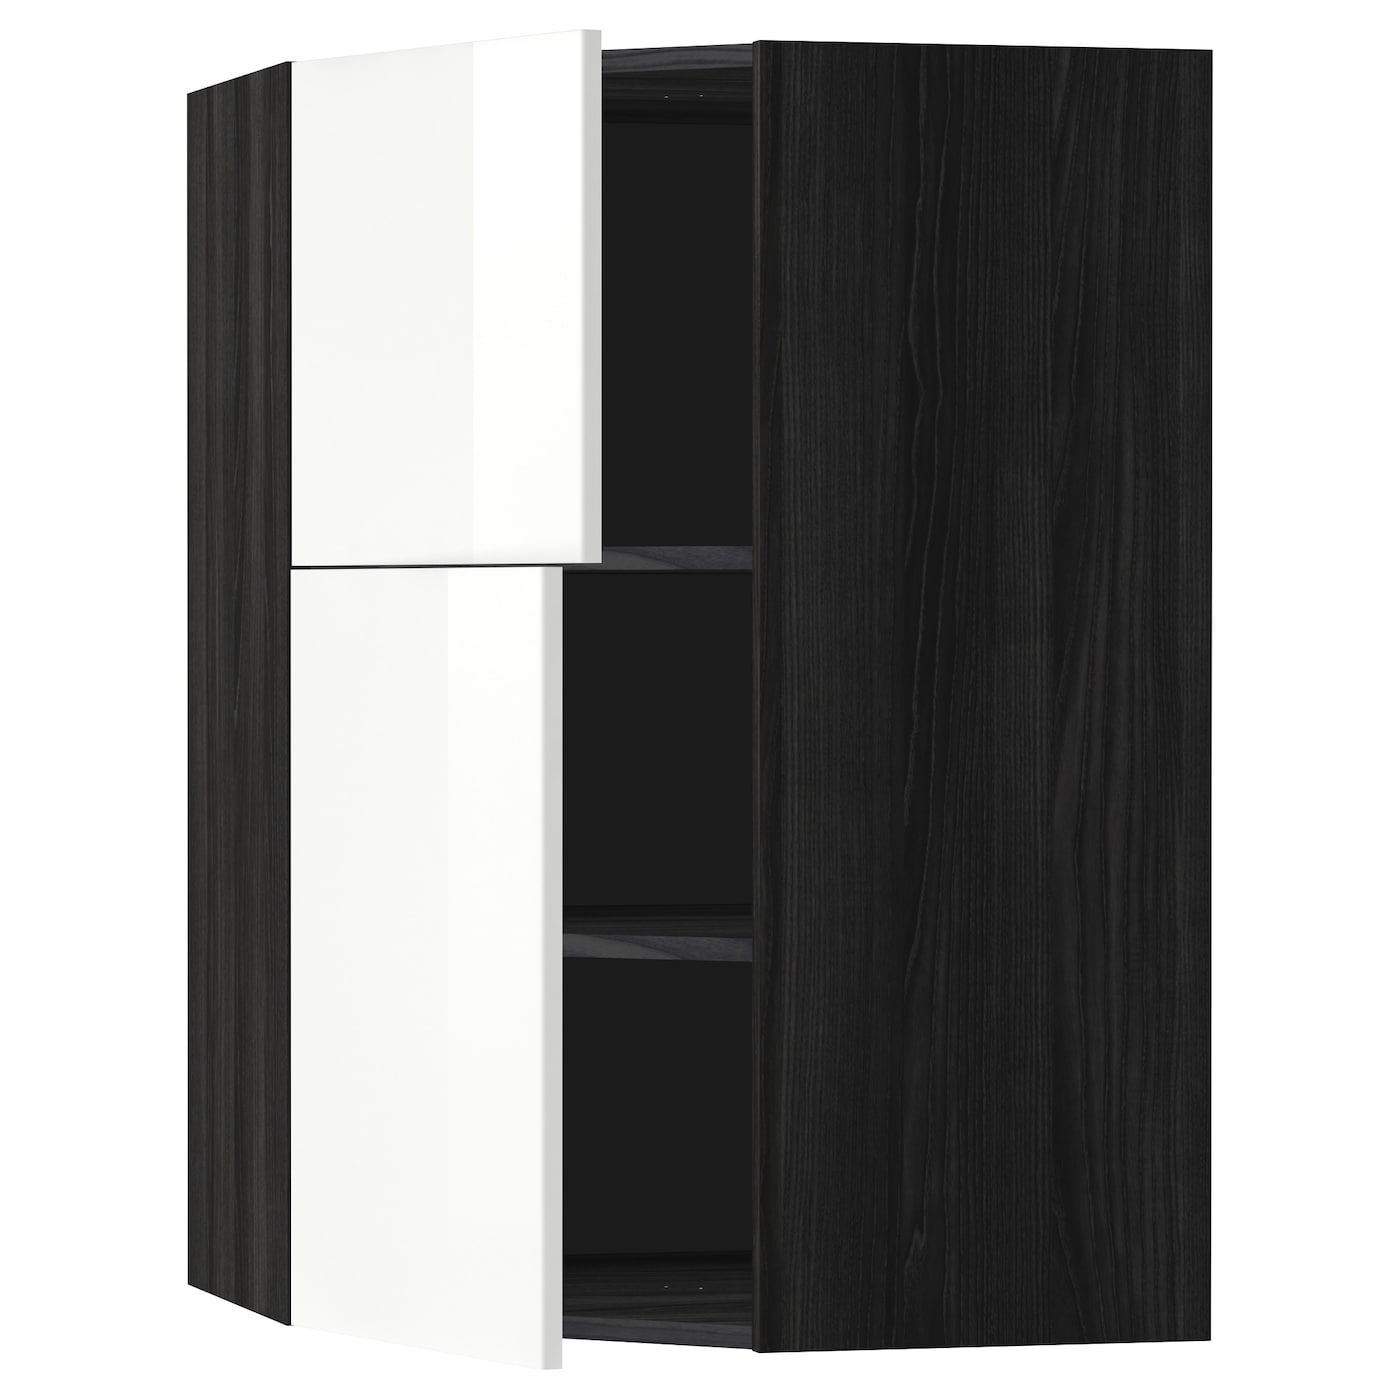 metod corner wall cab w shelves 2 doors black ringhult. Black Bedroom Furniture Sets. Home Design Ideas